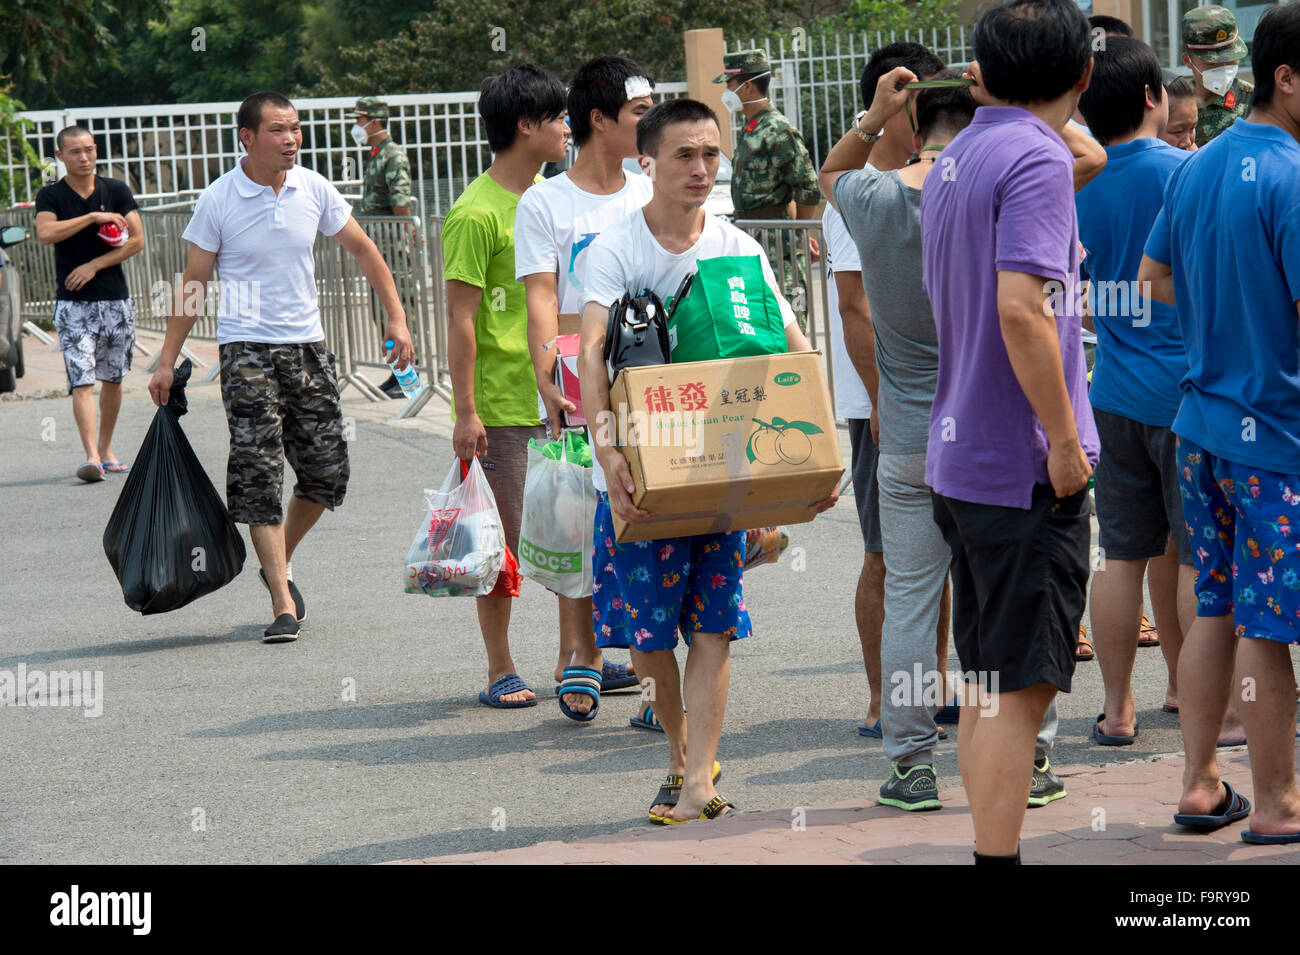 Tianjin Explosion aftermath People gather around the school camp to get there temporary ID cards as they are being - Stock Image